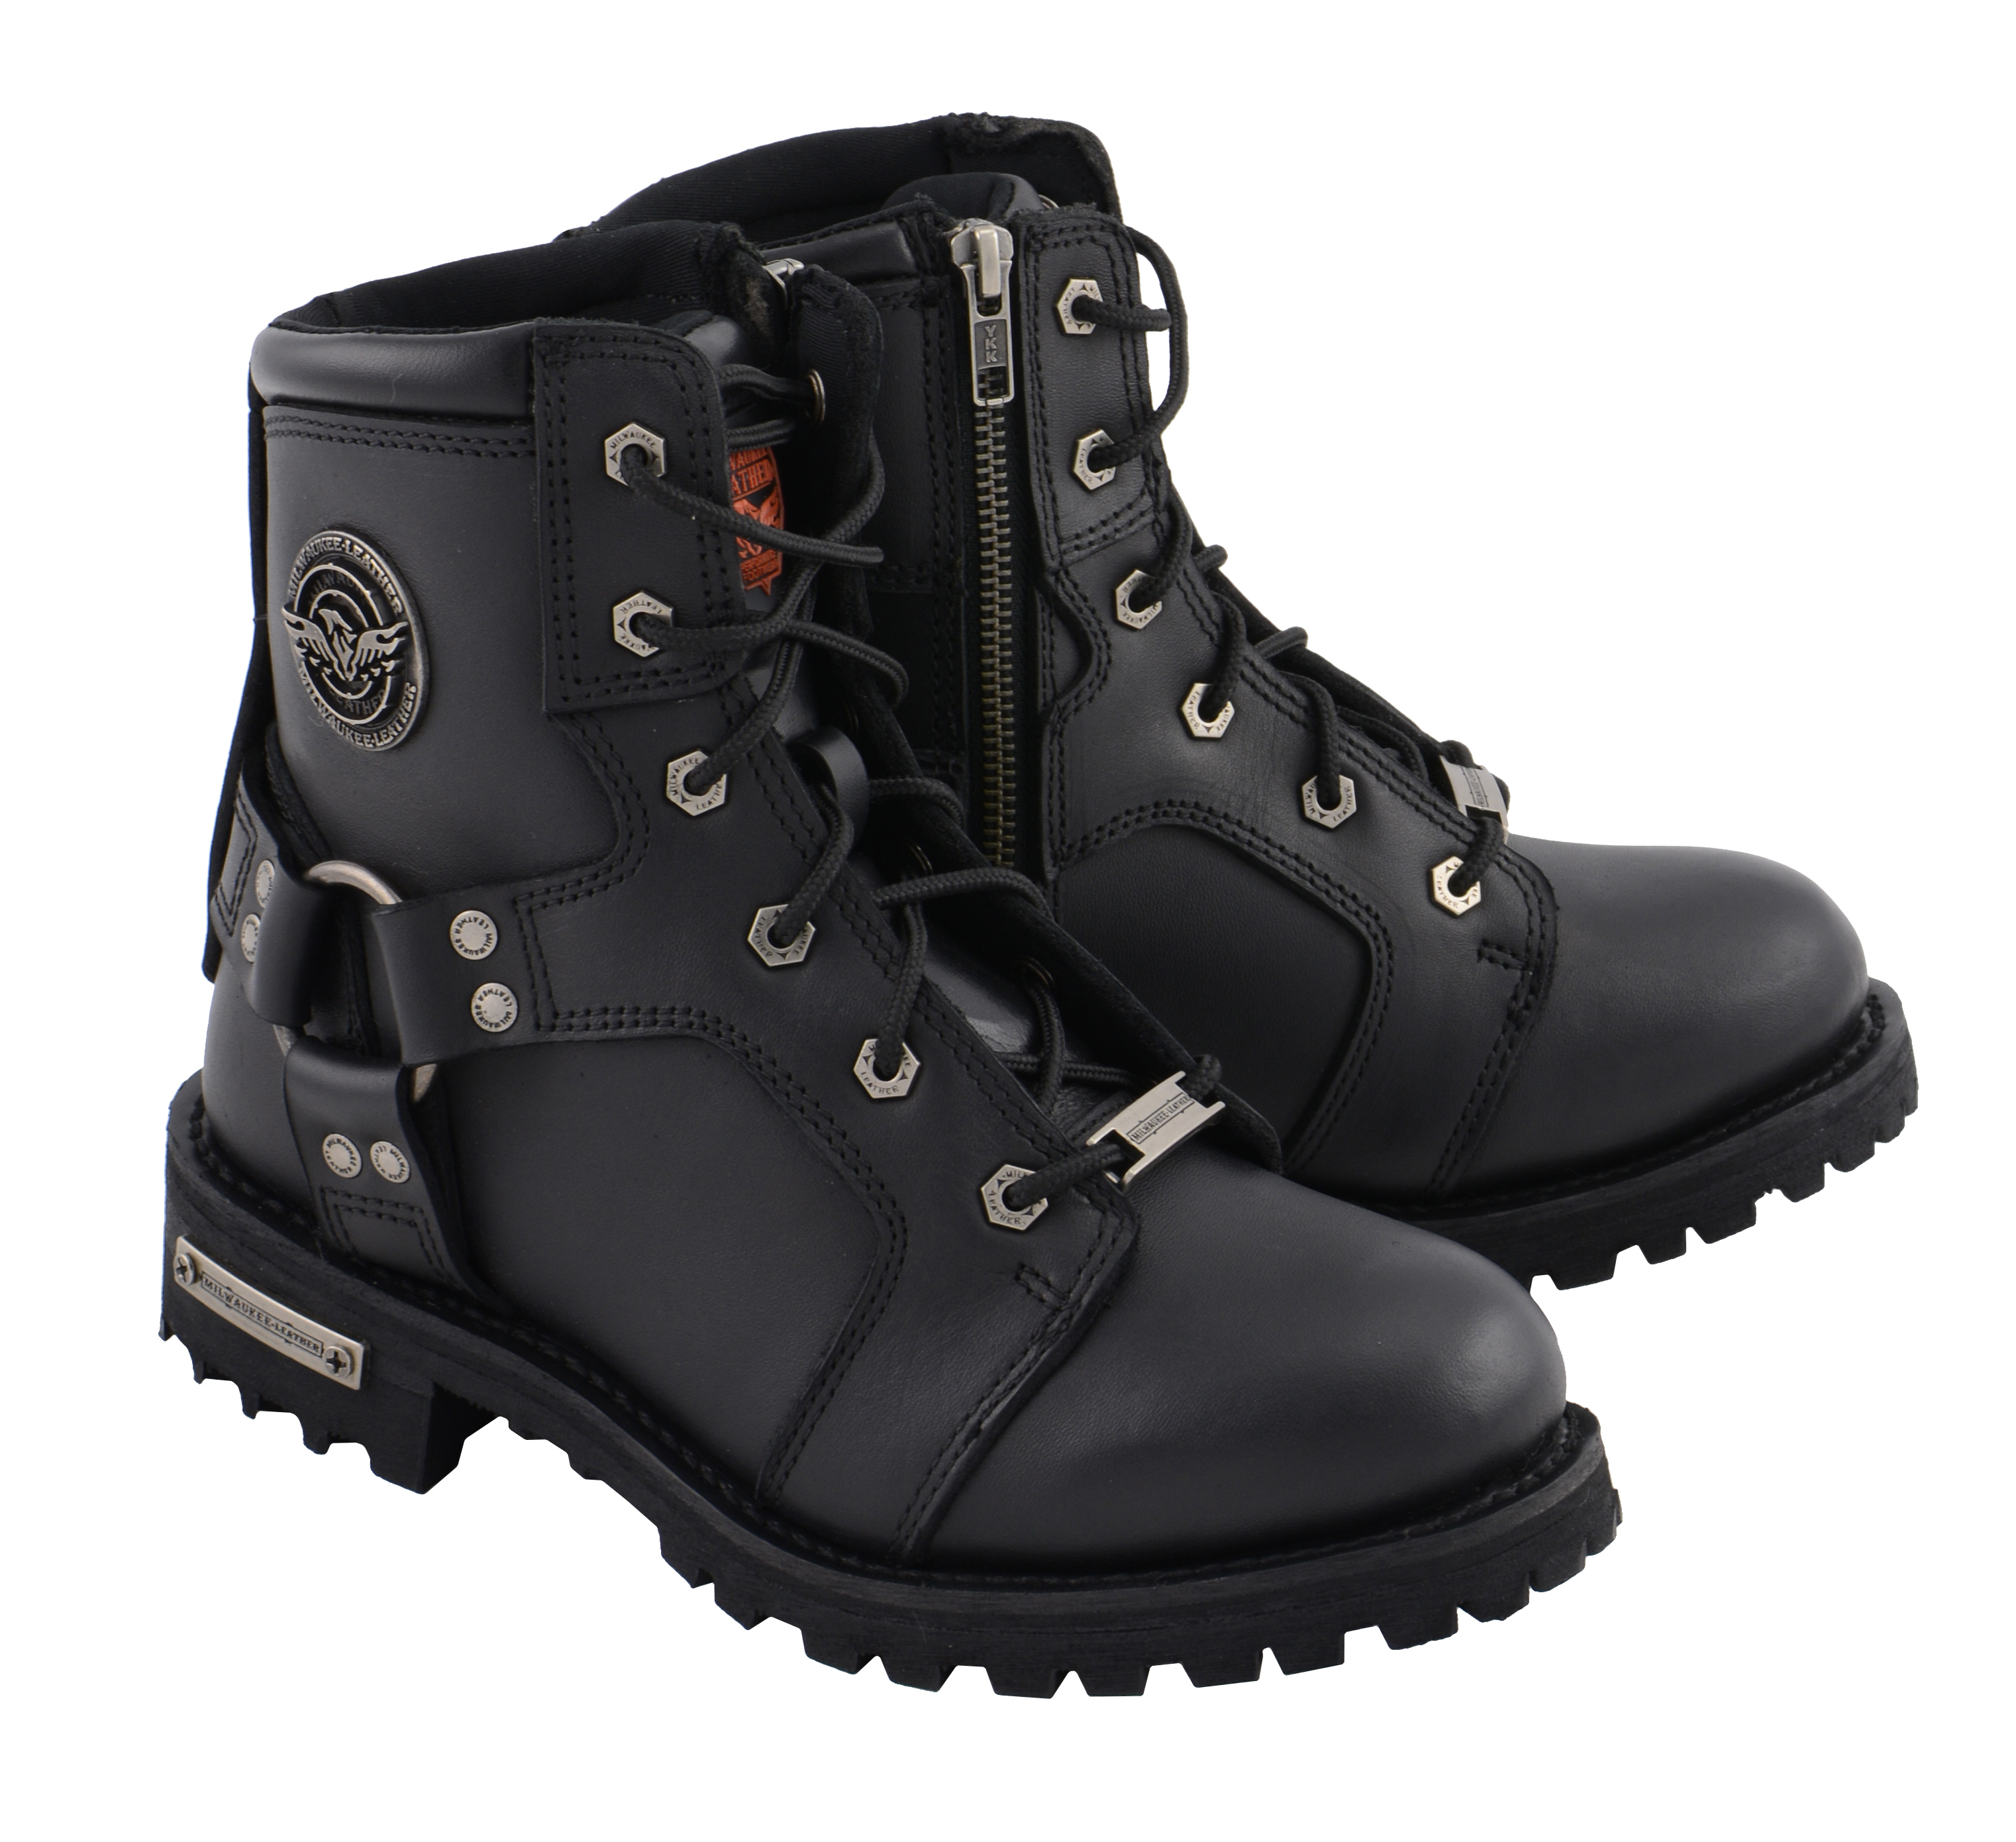 6 Milwaukee Leather MBL9302 Womens Black 8-Inch Lace-Up Harness Boots with Side Zipper Entry